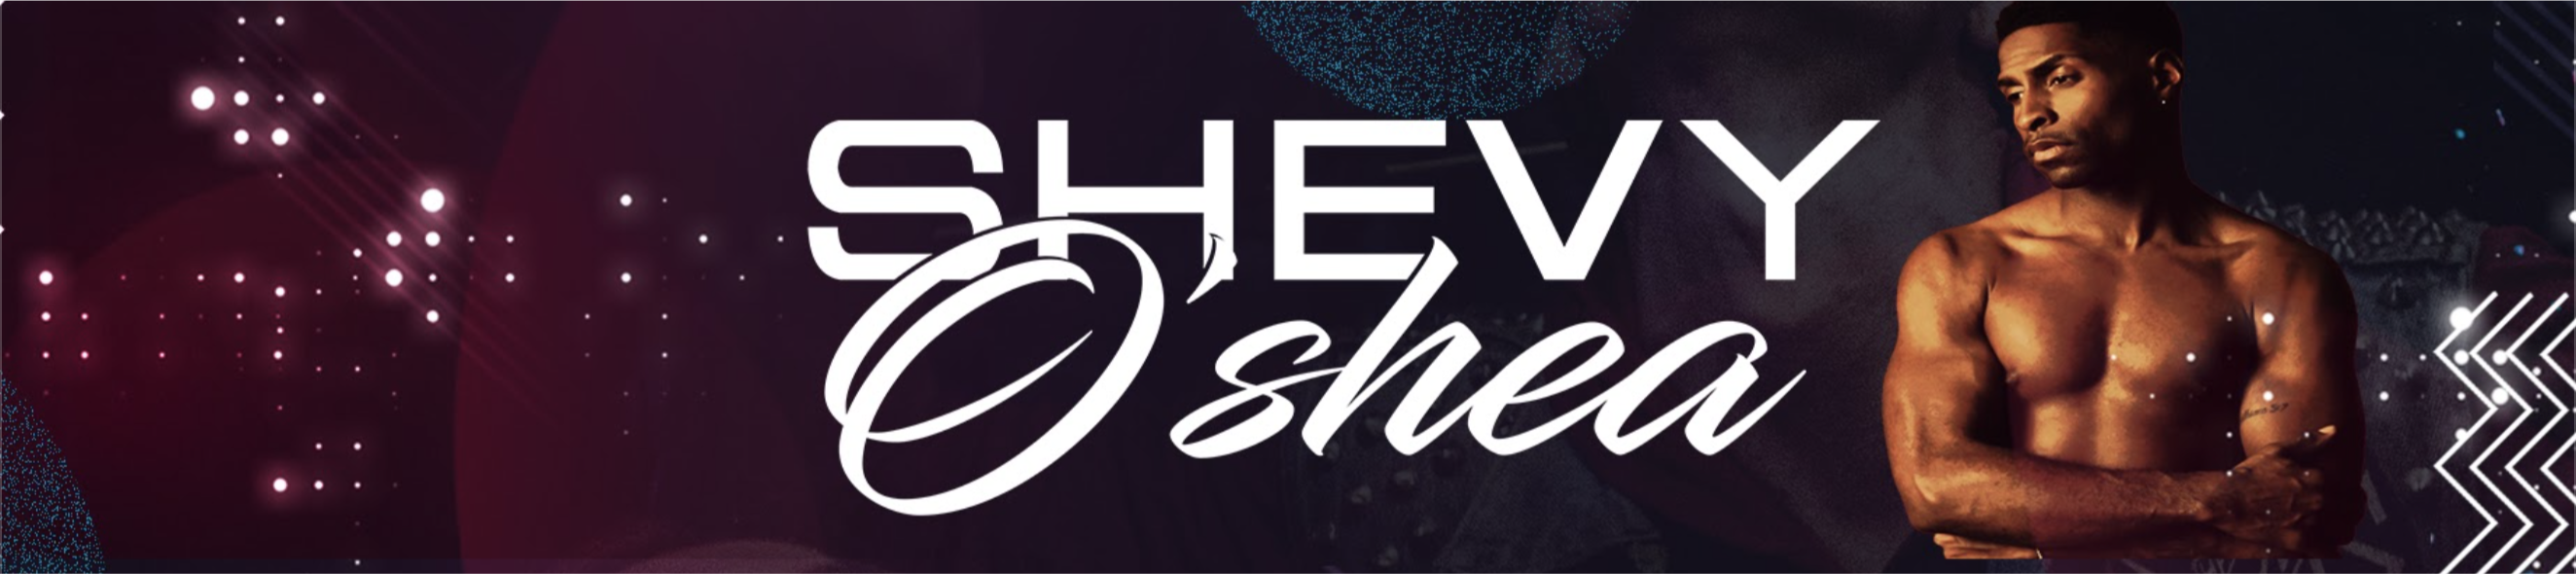 Artist Shevy O'Shea is turning his dreams into reality with his unique sound and has a new single #RihannaMove – a R&B, Caribbean delight